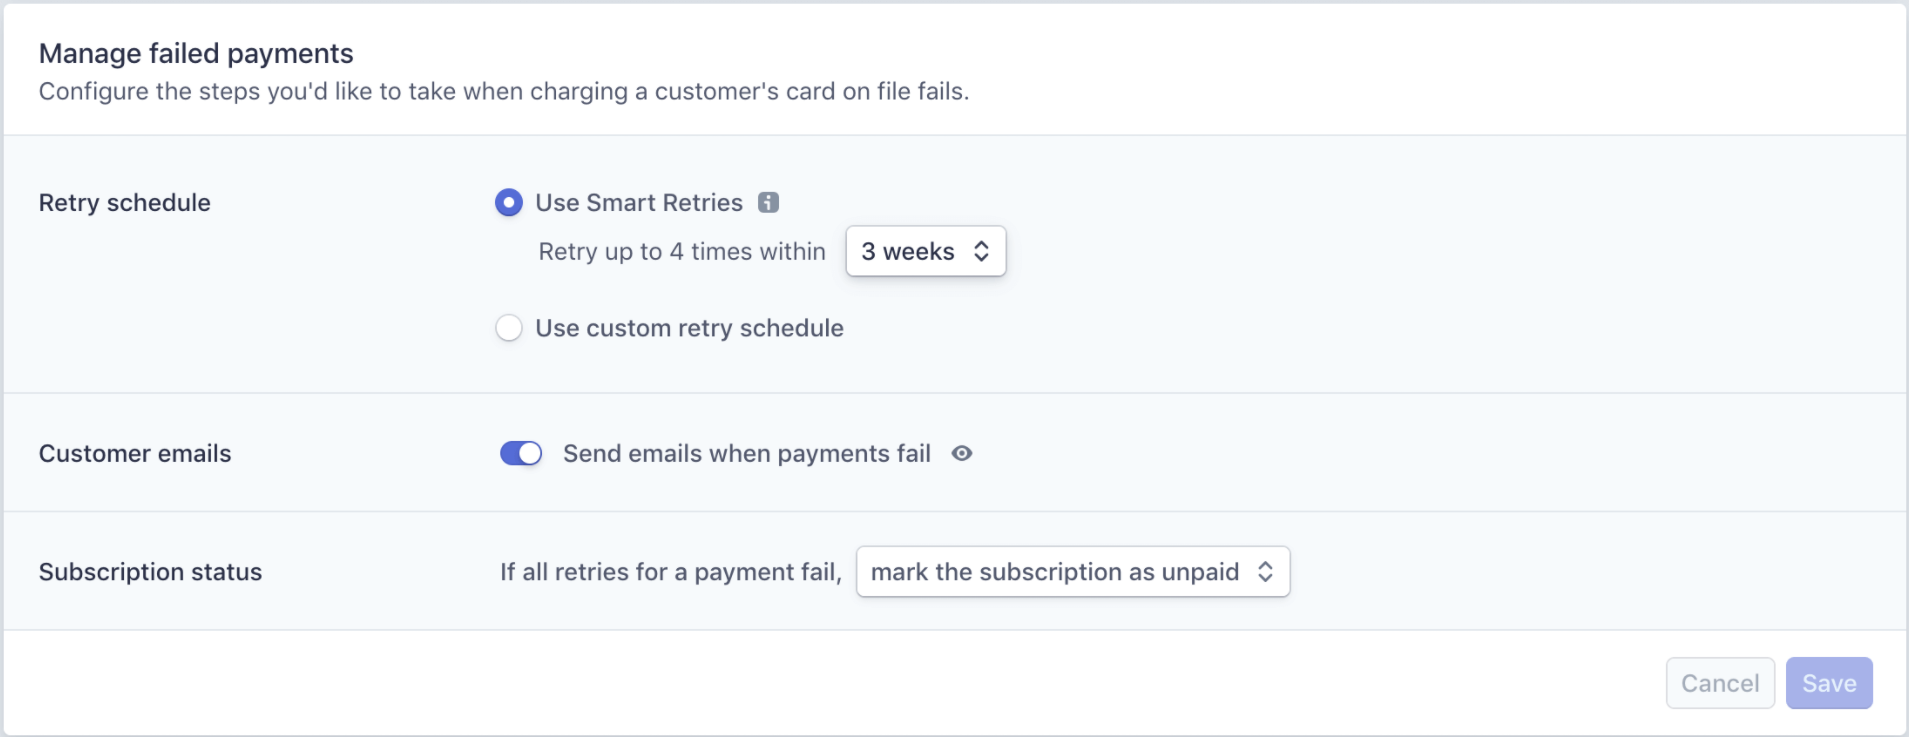 Failed recurring payments